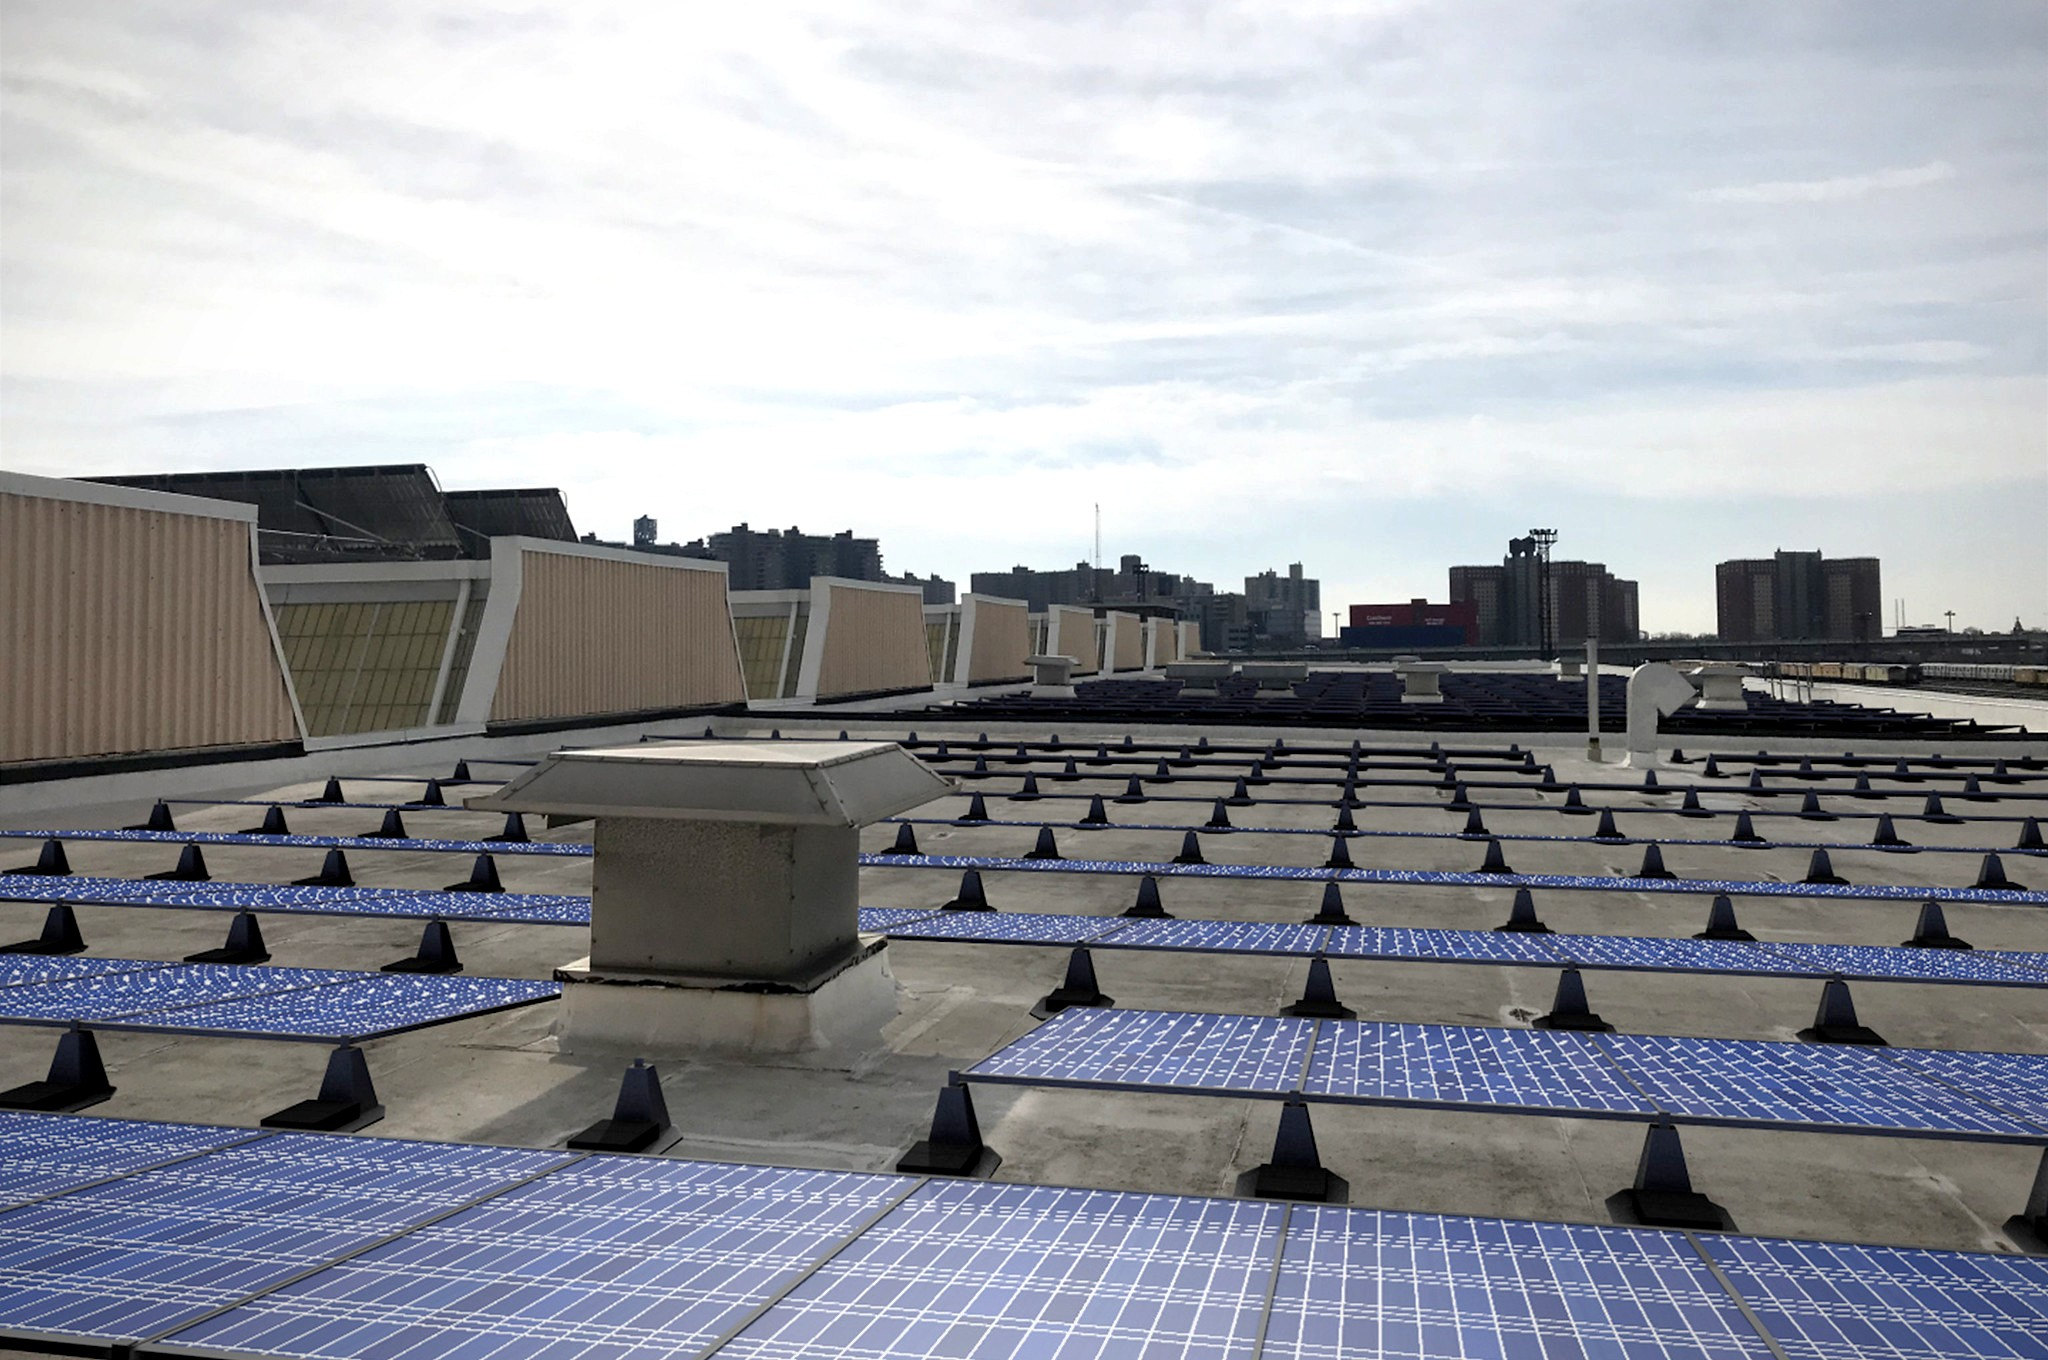 MTA looks to rooftop solar power to raise much-needed funds